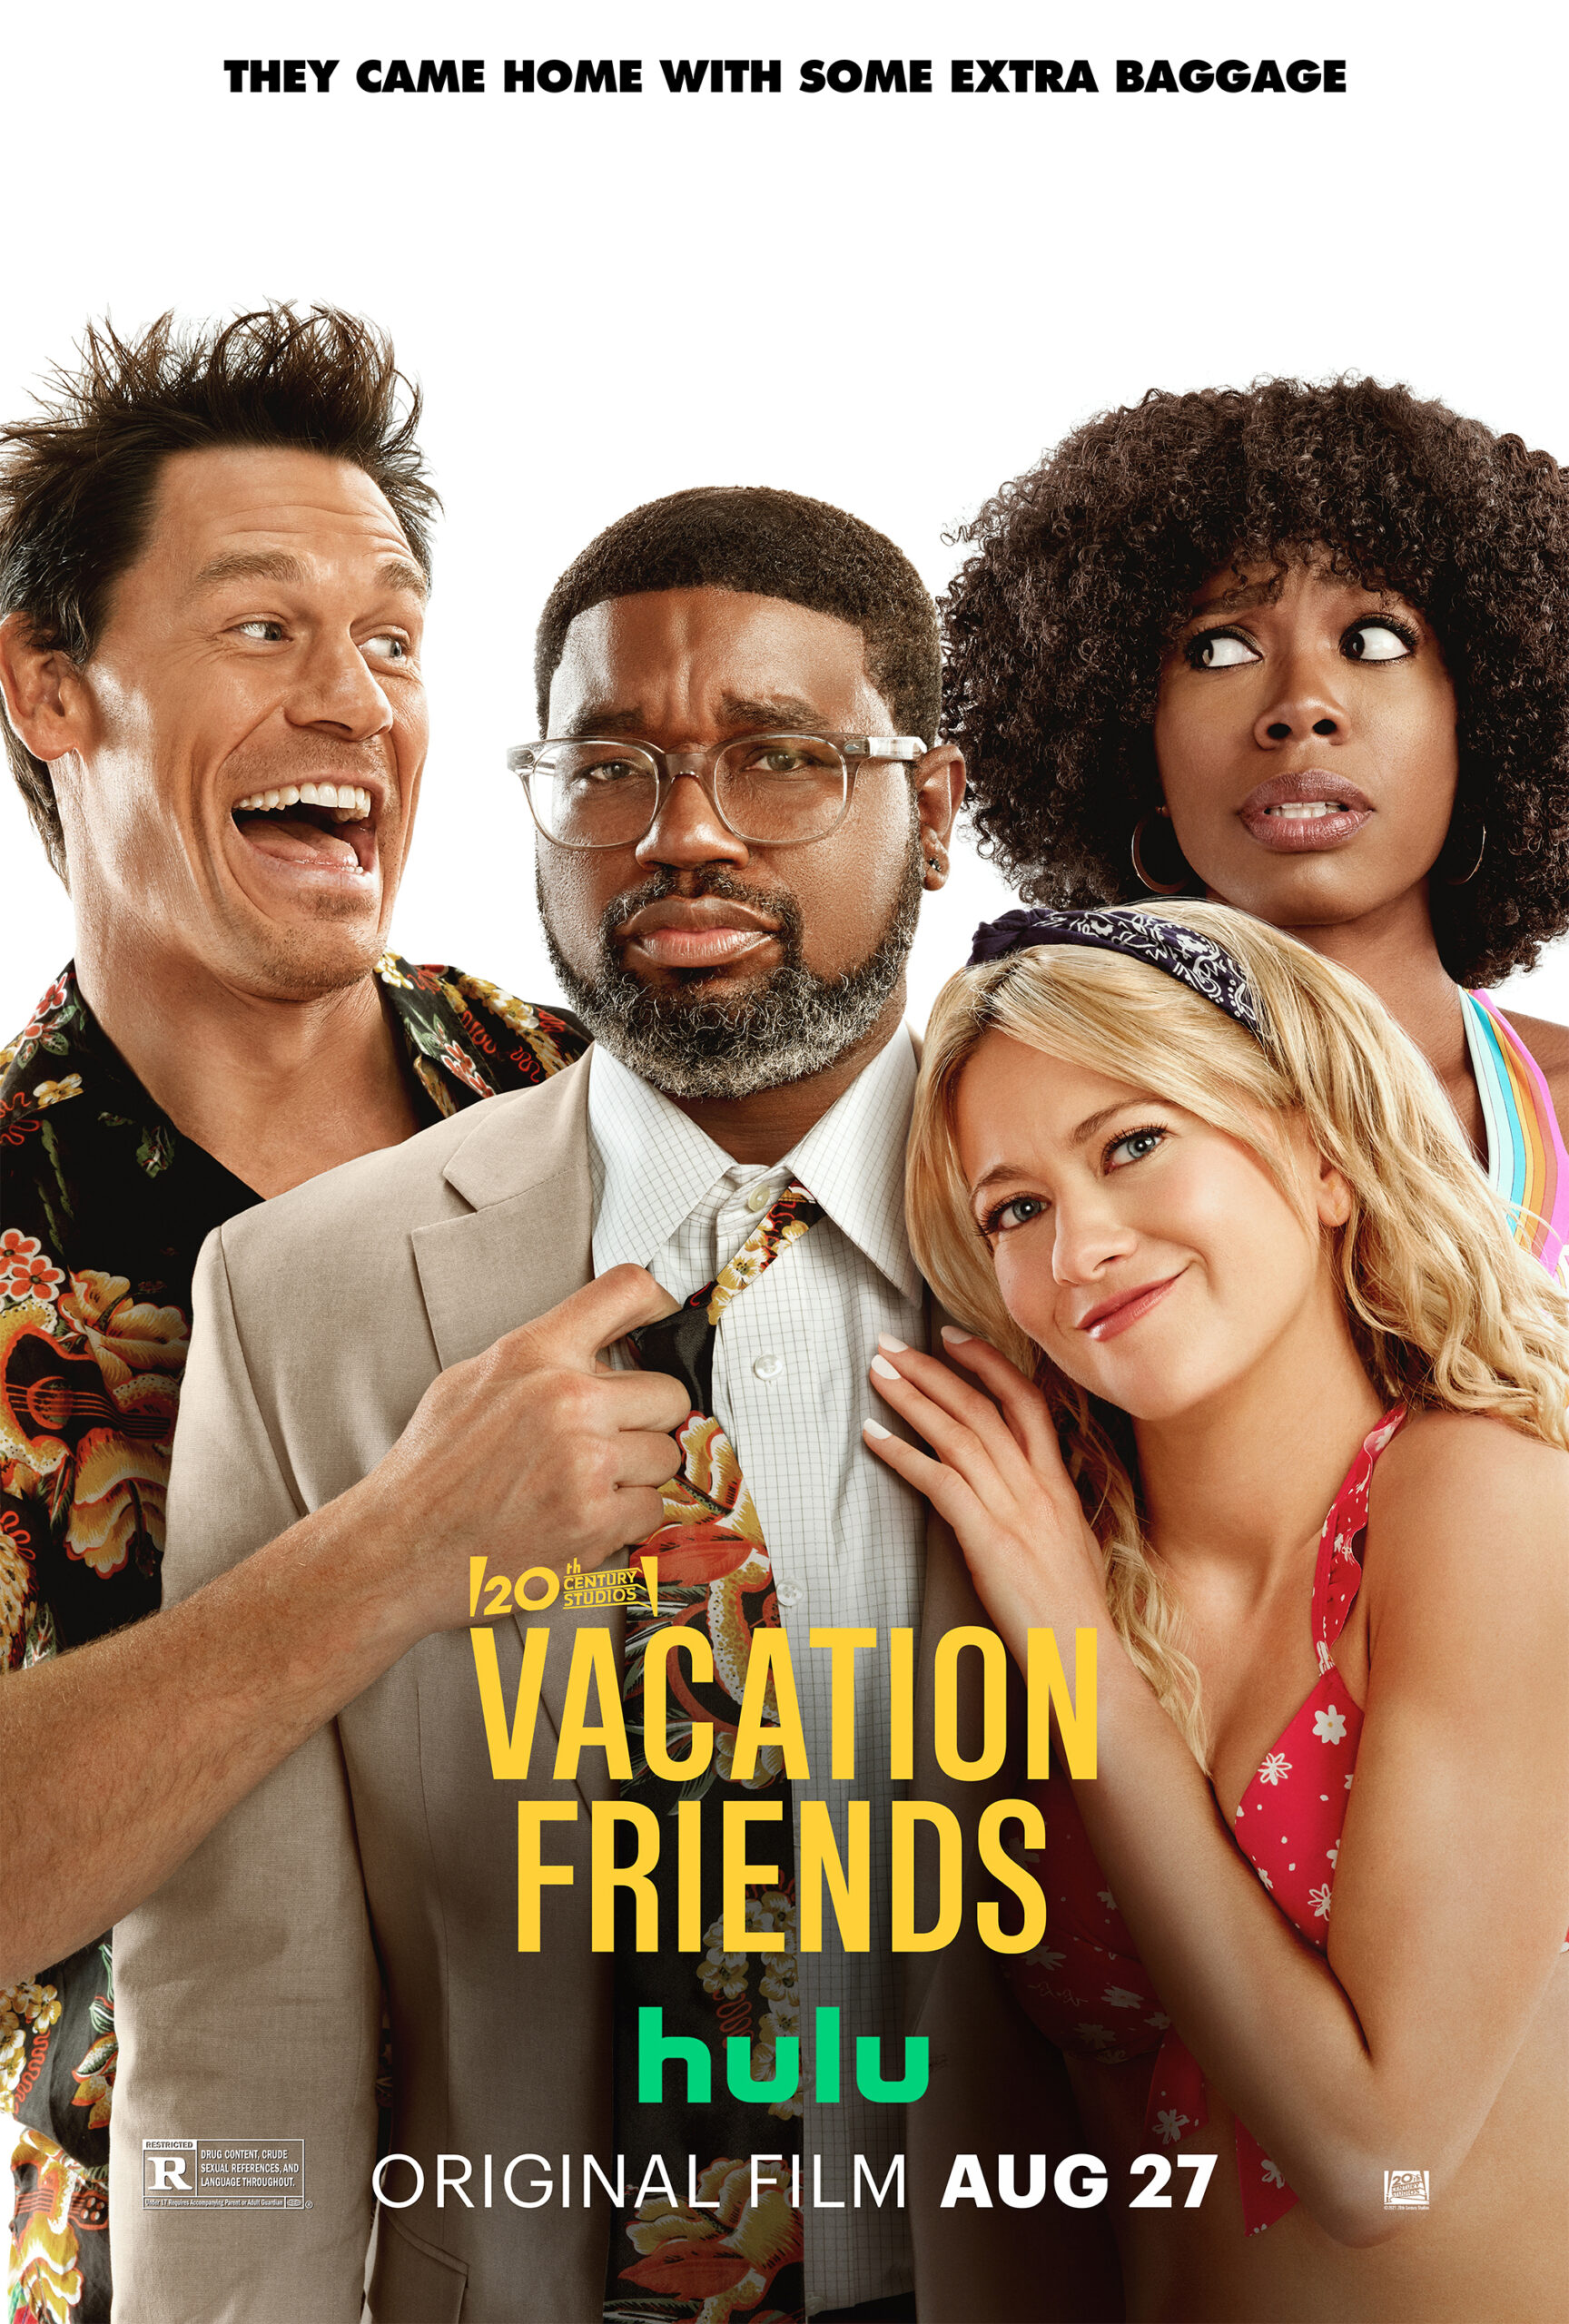 vacation friends hulu movie poster